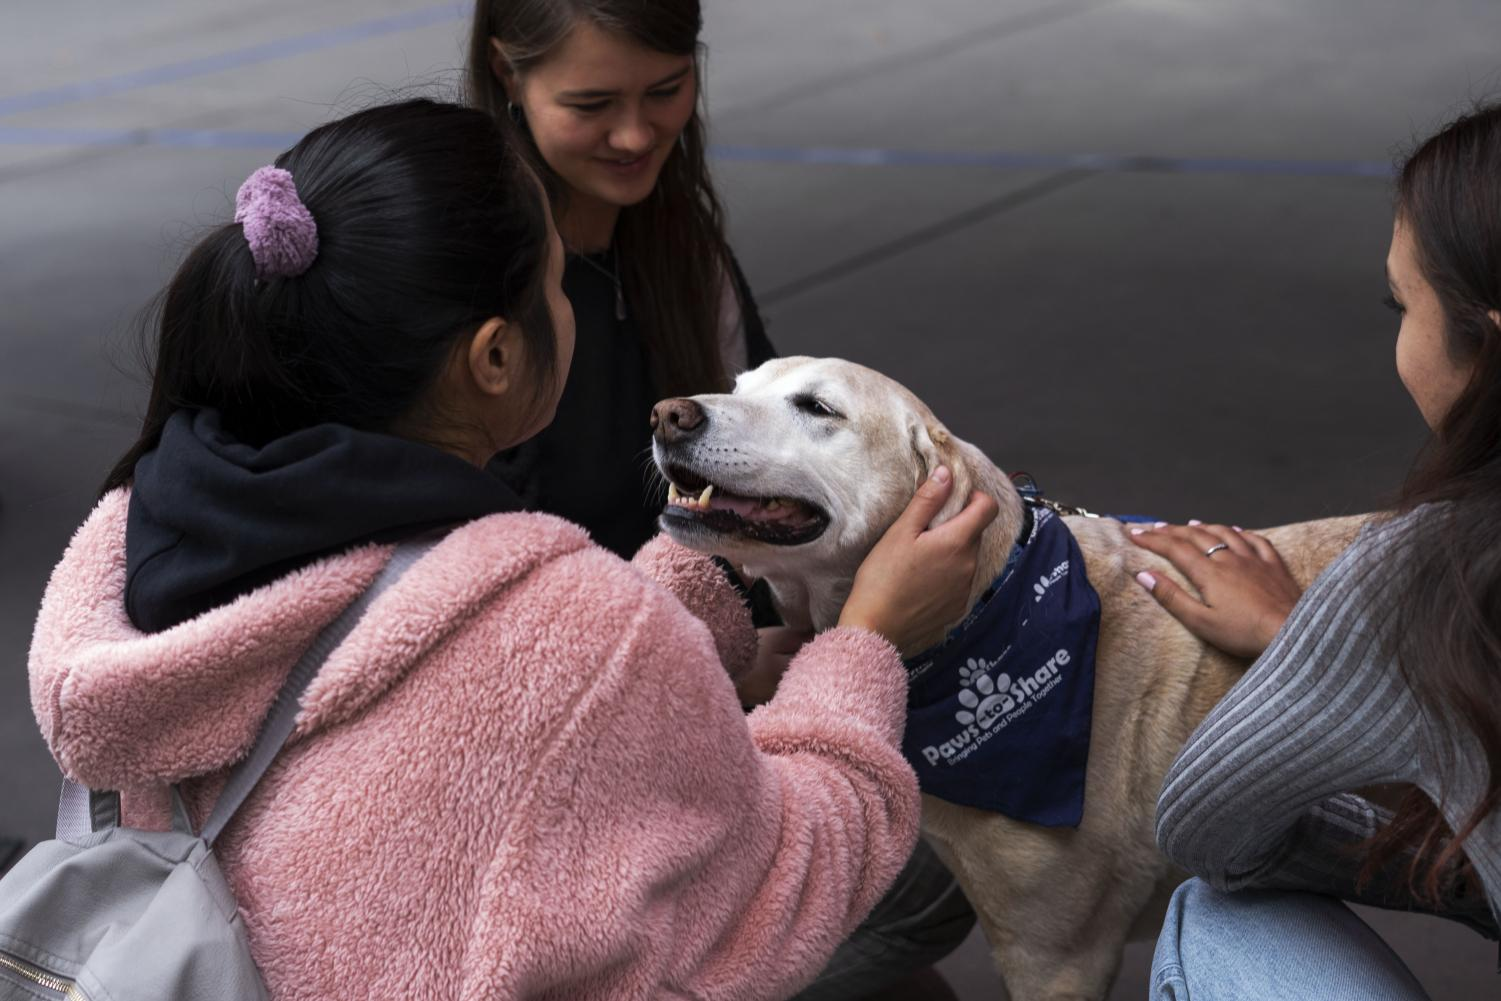 A labrador retriever greets a Cal State LA student. Paws-to-share arrive on the Cal State LA campus in time for finals week to destress students.